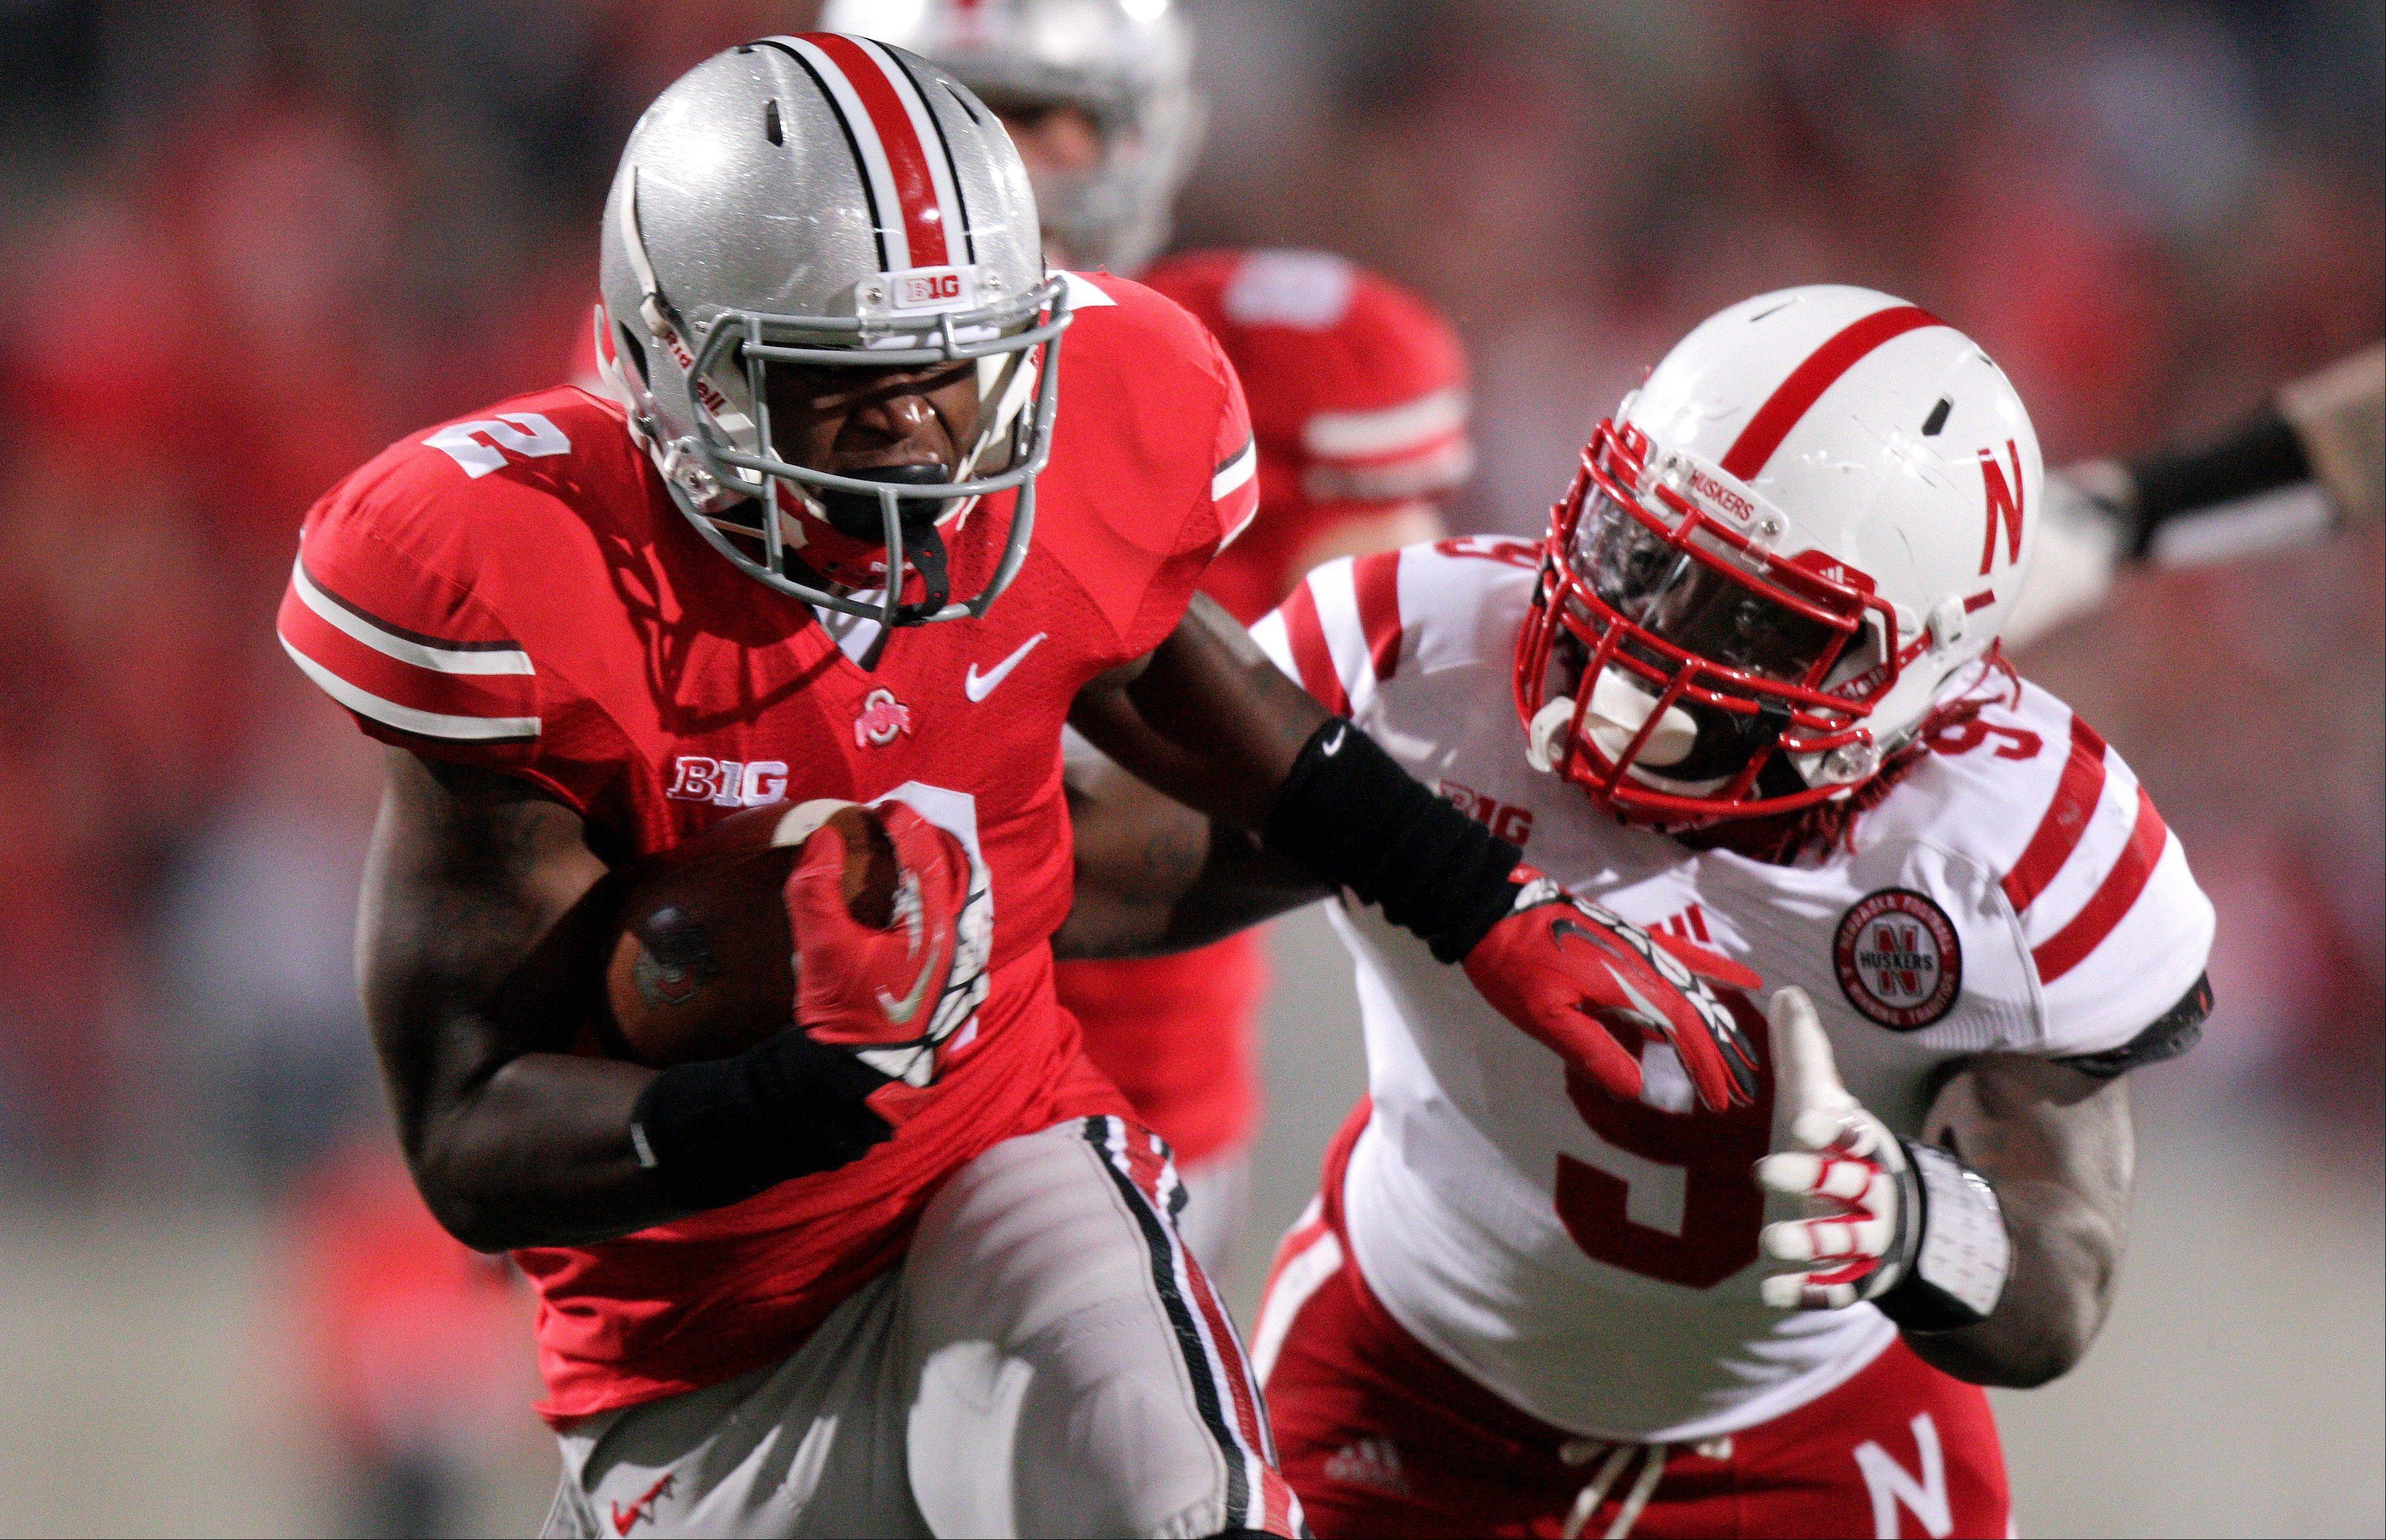 Ohio State running back Rod Smith outruns Nebraska's Jason Ankrah on his way to a touchdown during the fourth quarter last Saturday in Columbus, Ohio.